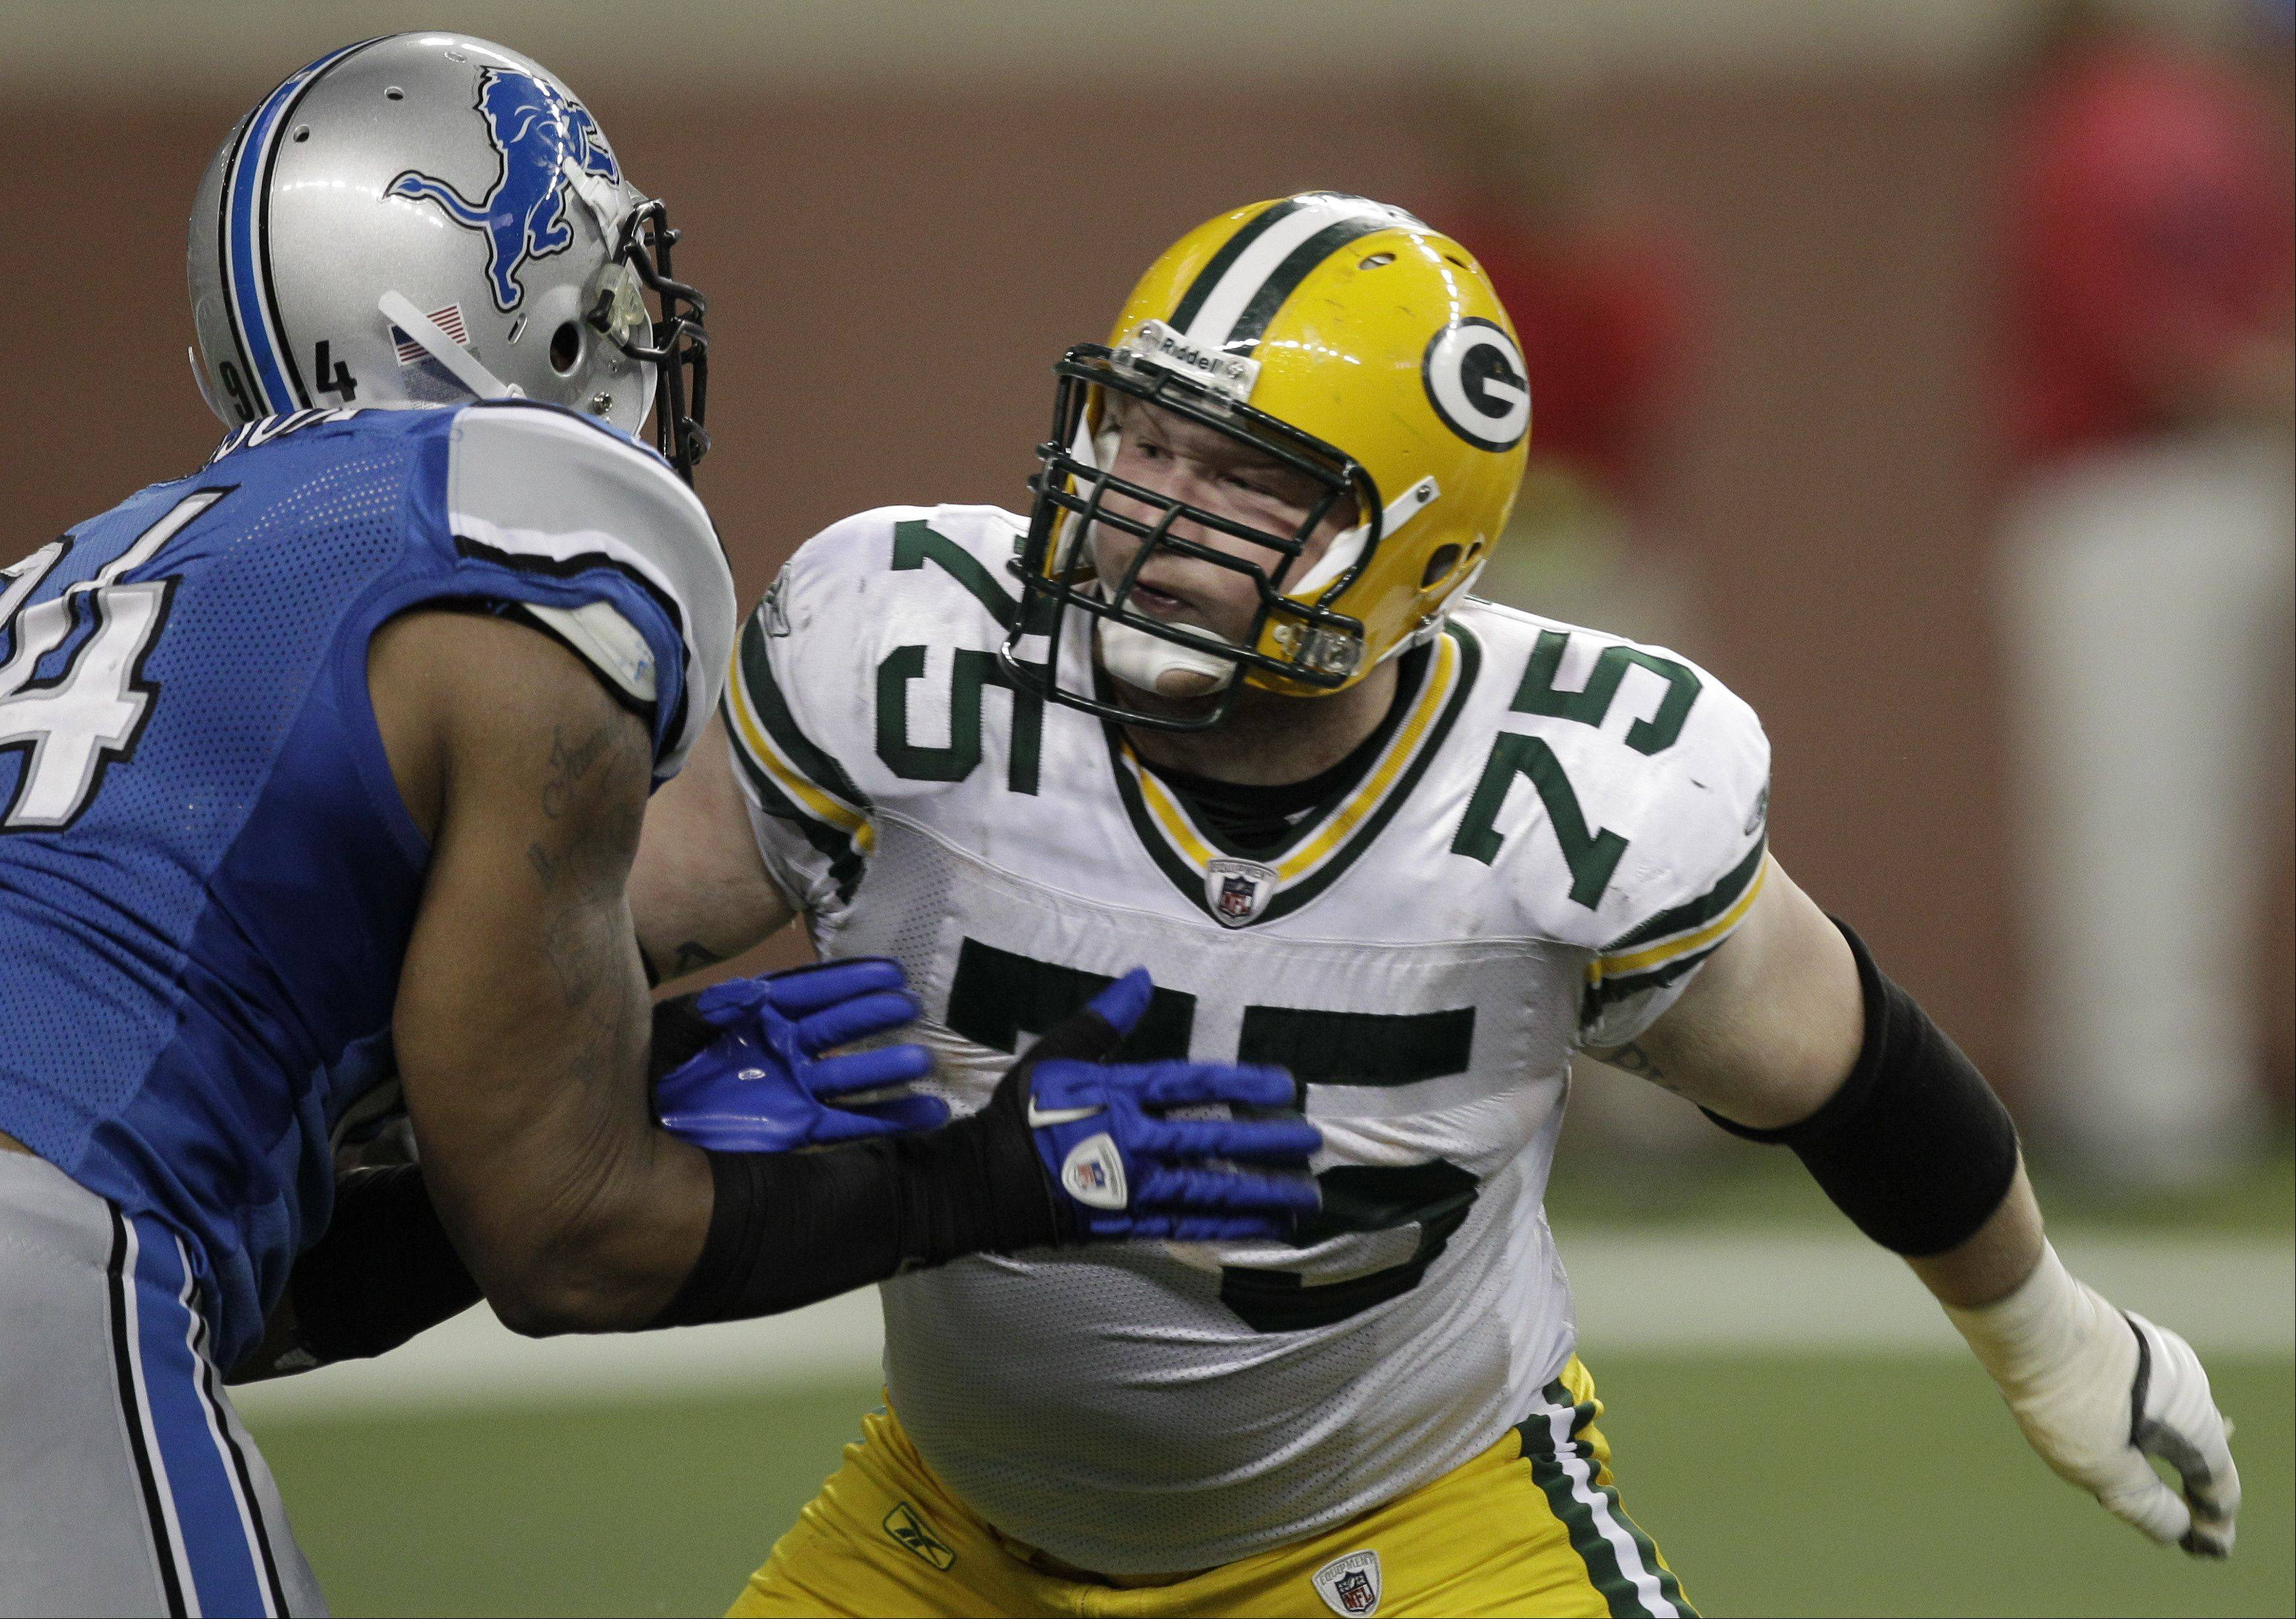 Green Bay Packers offensive tackle Bryan Bulaga (75) suffered a season-ending knee injury on Saturday. The Crystal Lake resident has started 33 games for the Packers since they drafted him in 2010 from the University of Iowa in the first round.